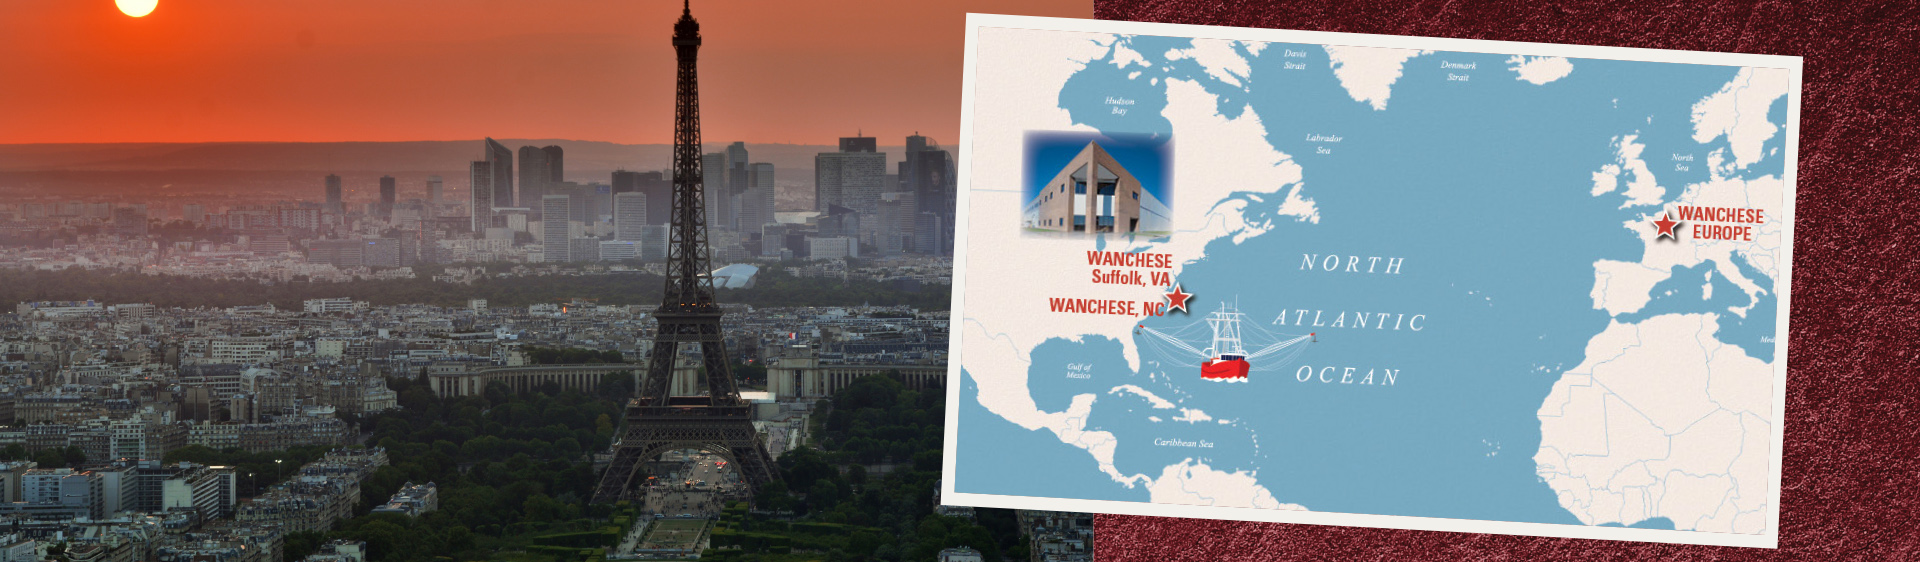 Wanchese France